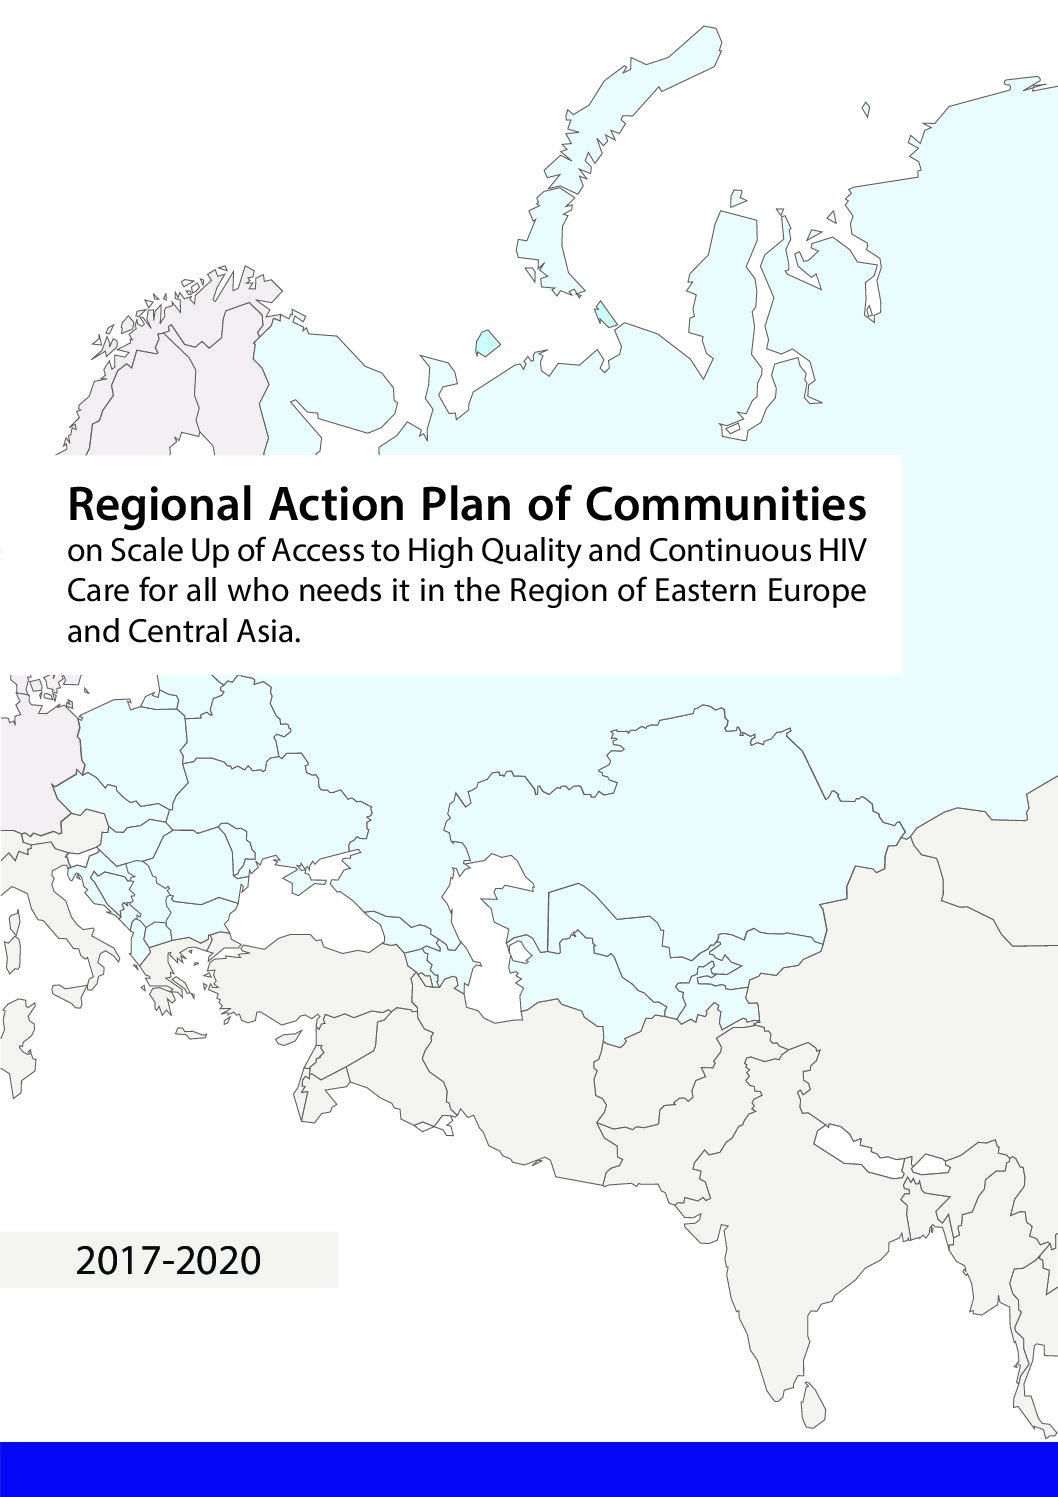 Regional Action Plan of Communities on Scale Up of Access to High Quality and Continuous HIV Care for all who needs it in the Region of Eastern Europe and Central Asia.